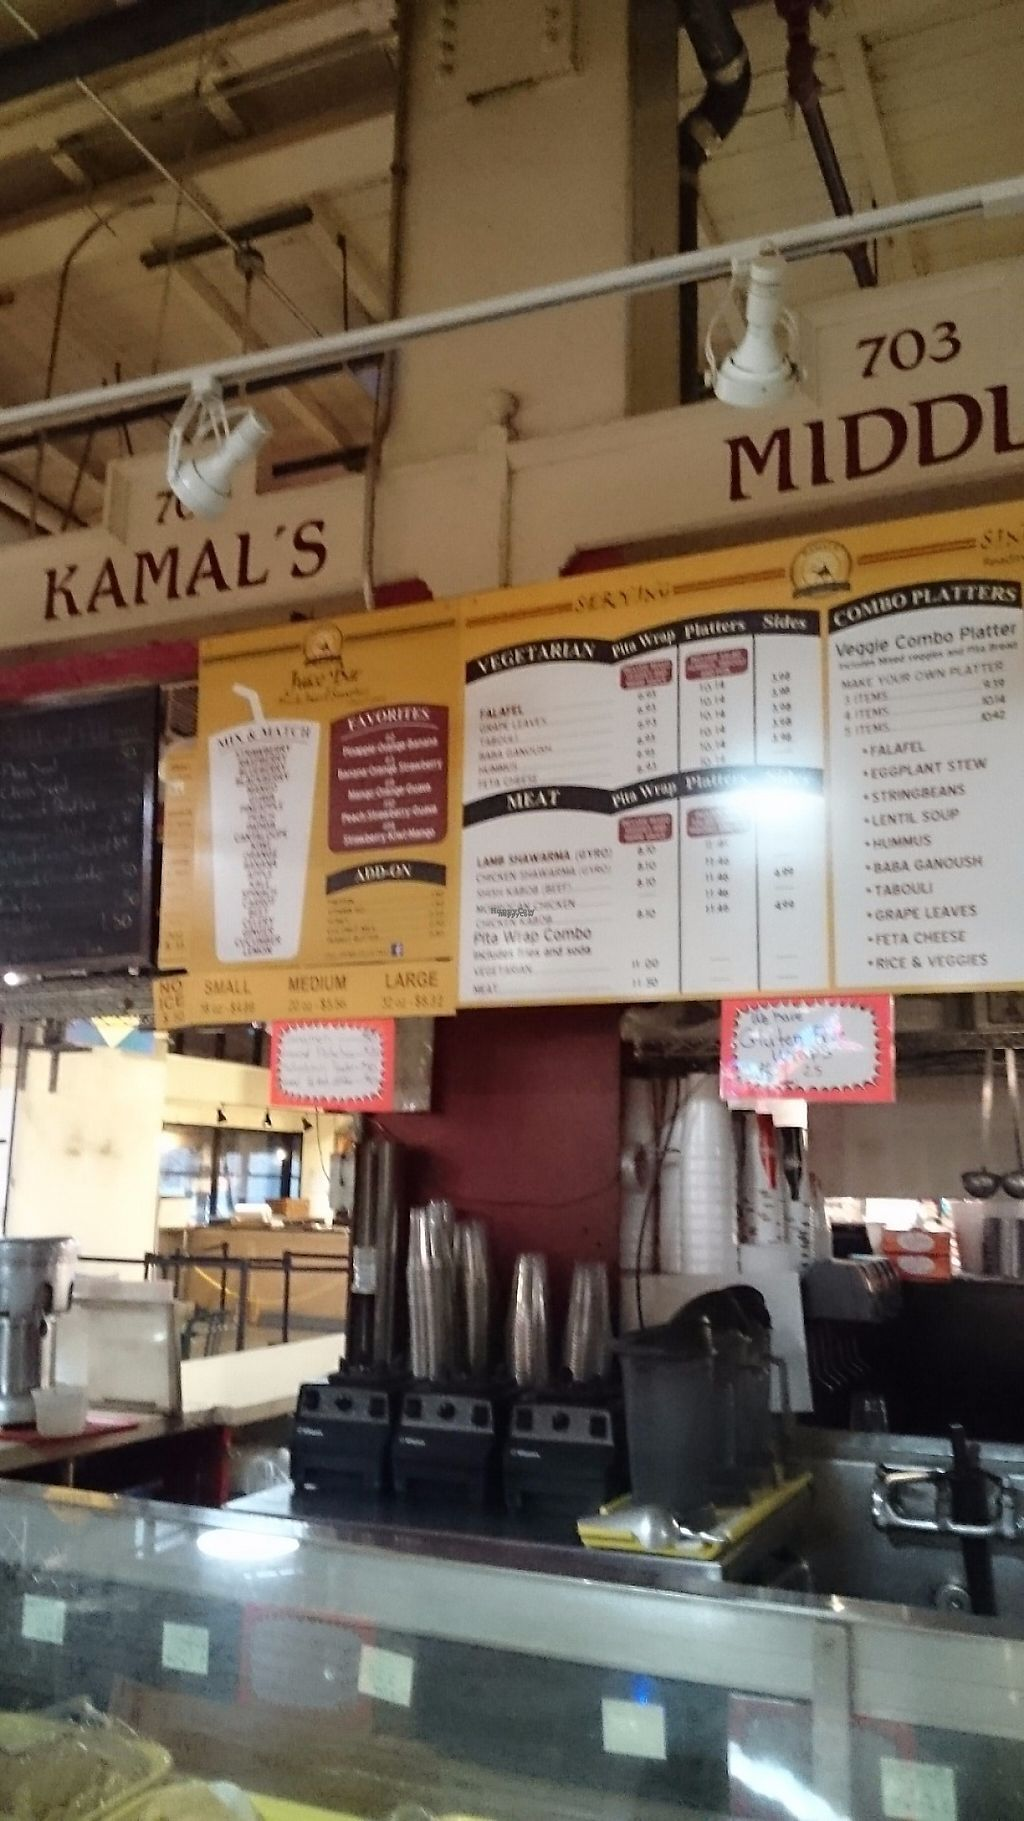 """Photo of Kamal's Middle Eastern Specialities  by <a href=""""/members/profile/ZoraySpielvogel"""">ZoraySpielvogel</a> <br/>Their exterior  <br/> March 31, 2017  - <a href='/contact/abuse/image/89550/243143'>Report</a>"""